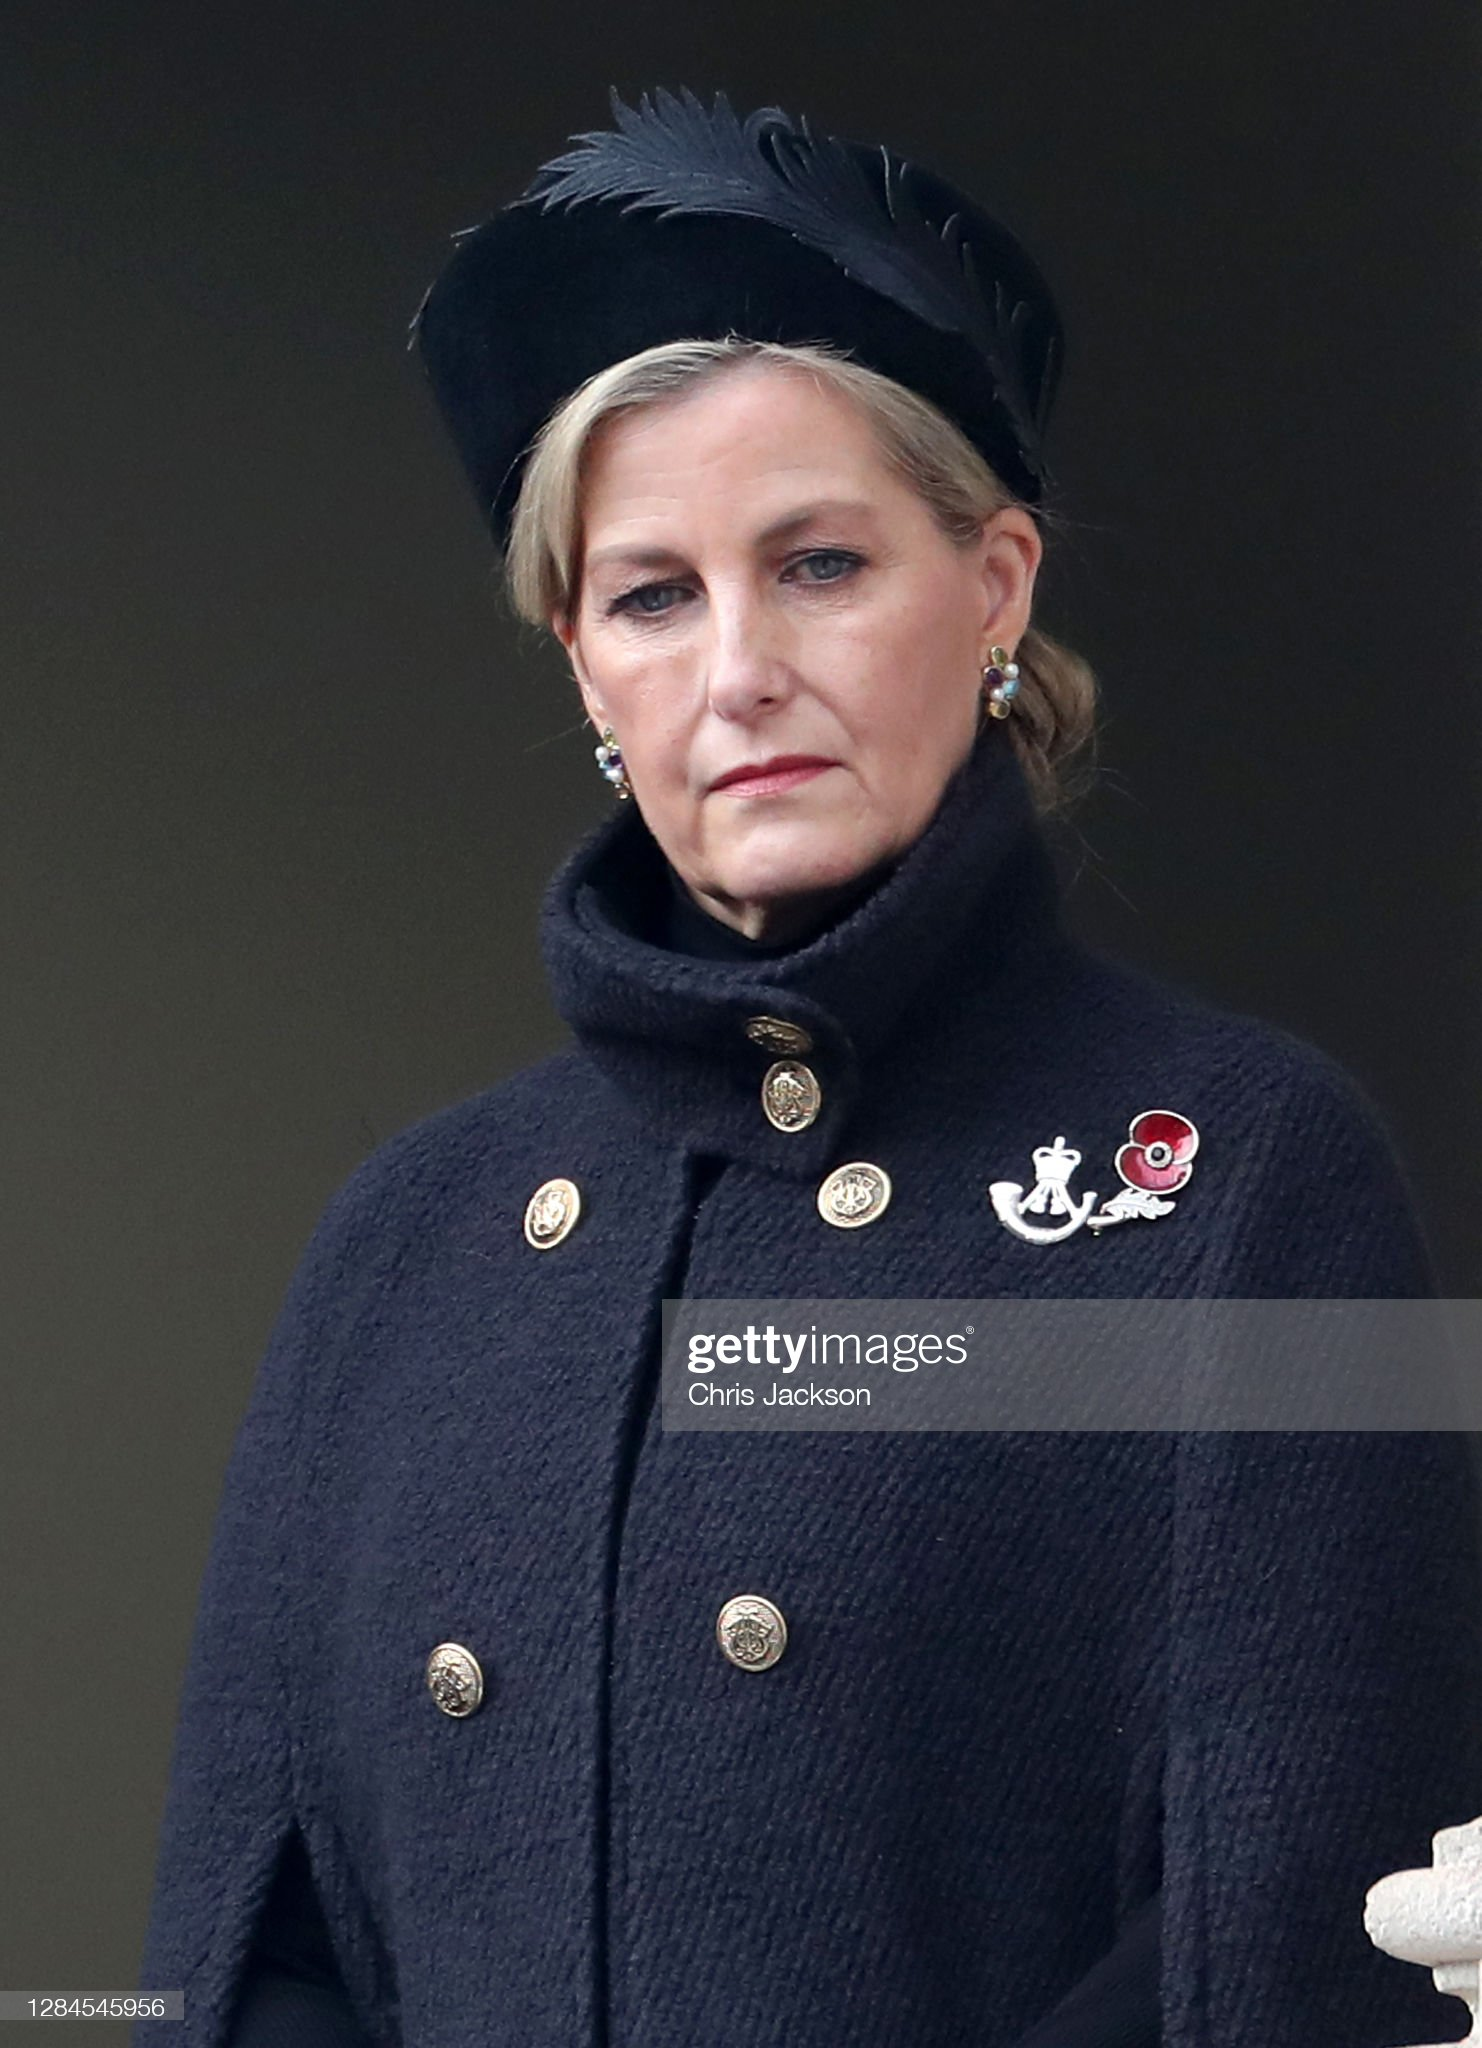 https://media.gettyimages.com/photos/sophie-countess-of-wessex-during-the-national-service-of-remembrance-picture-id1284545956?s=2048x2048